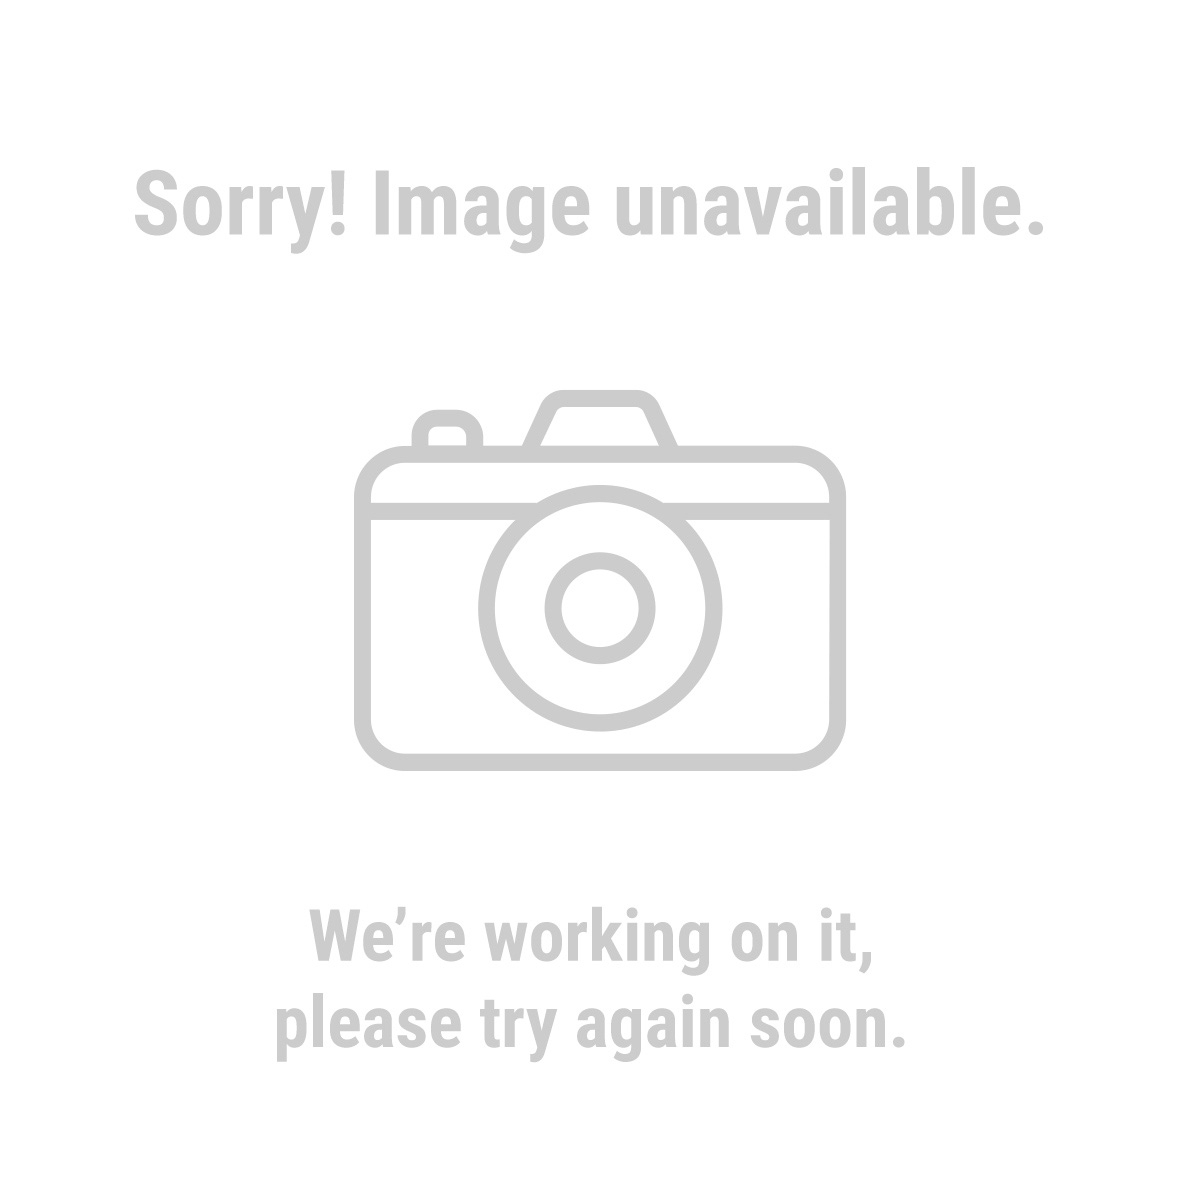 Krause & Becker 60446 Electric Paint Spray Gun